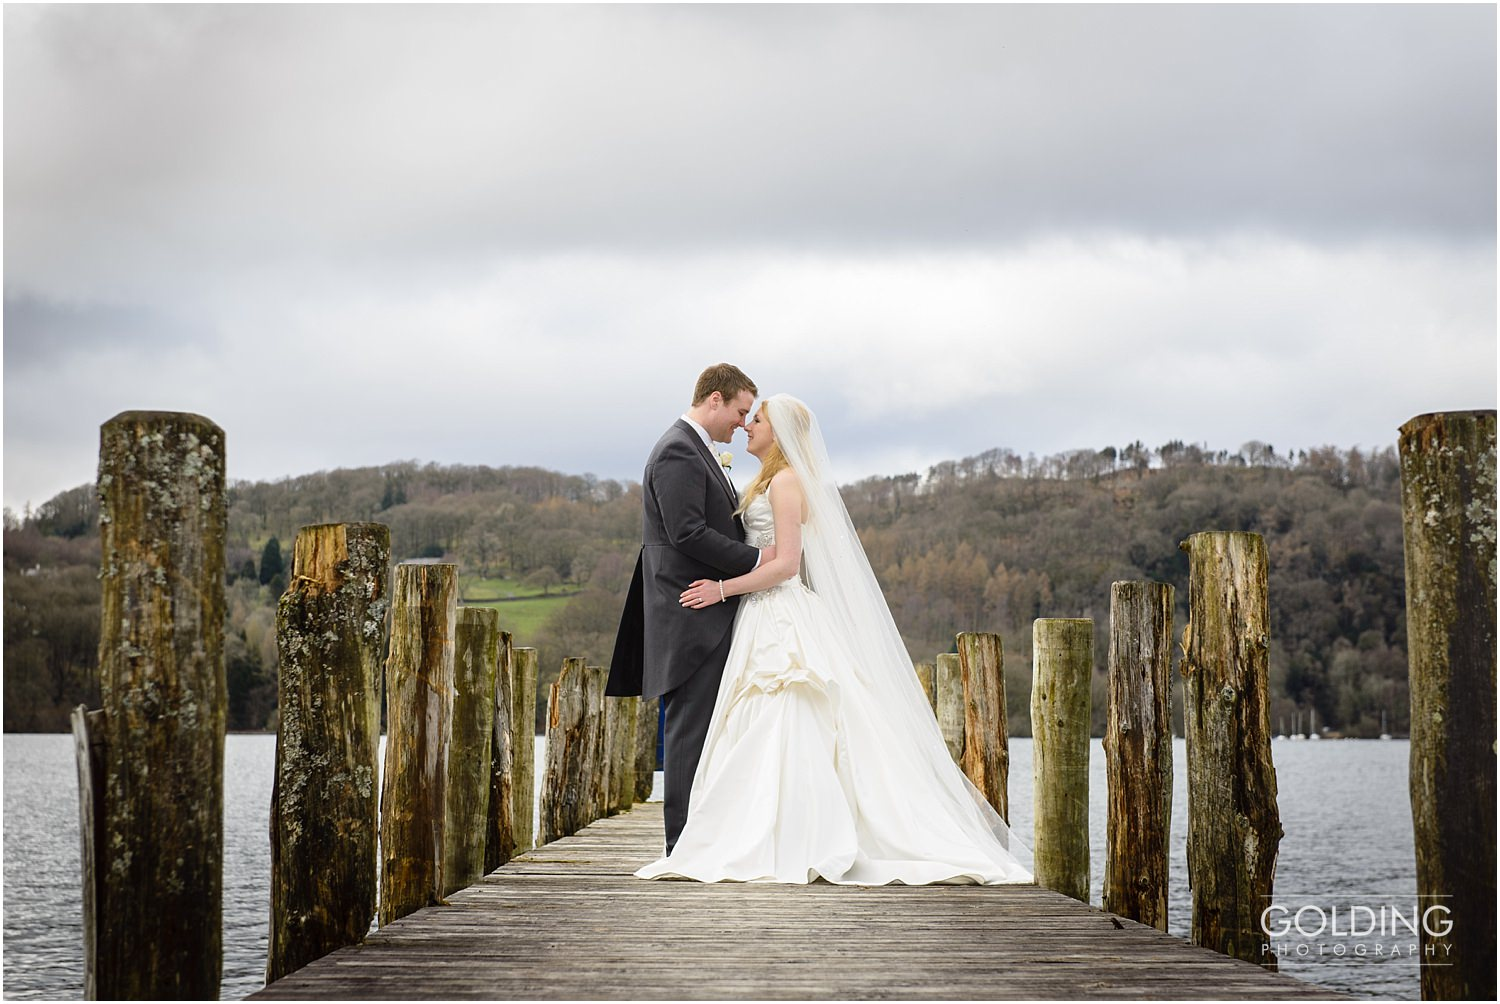 Kathryn and James – Storrs Hall, Windermere